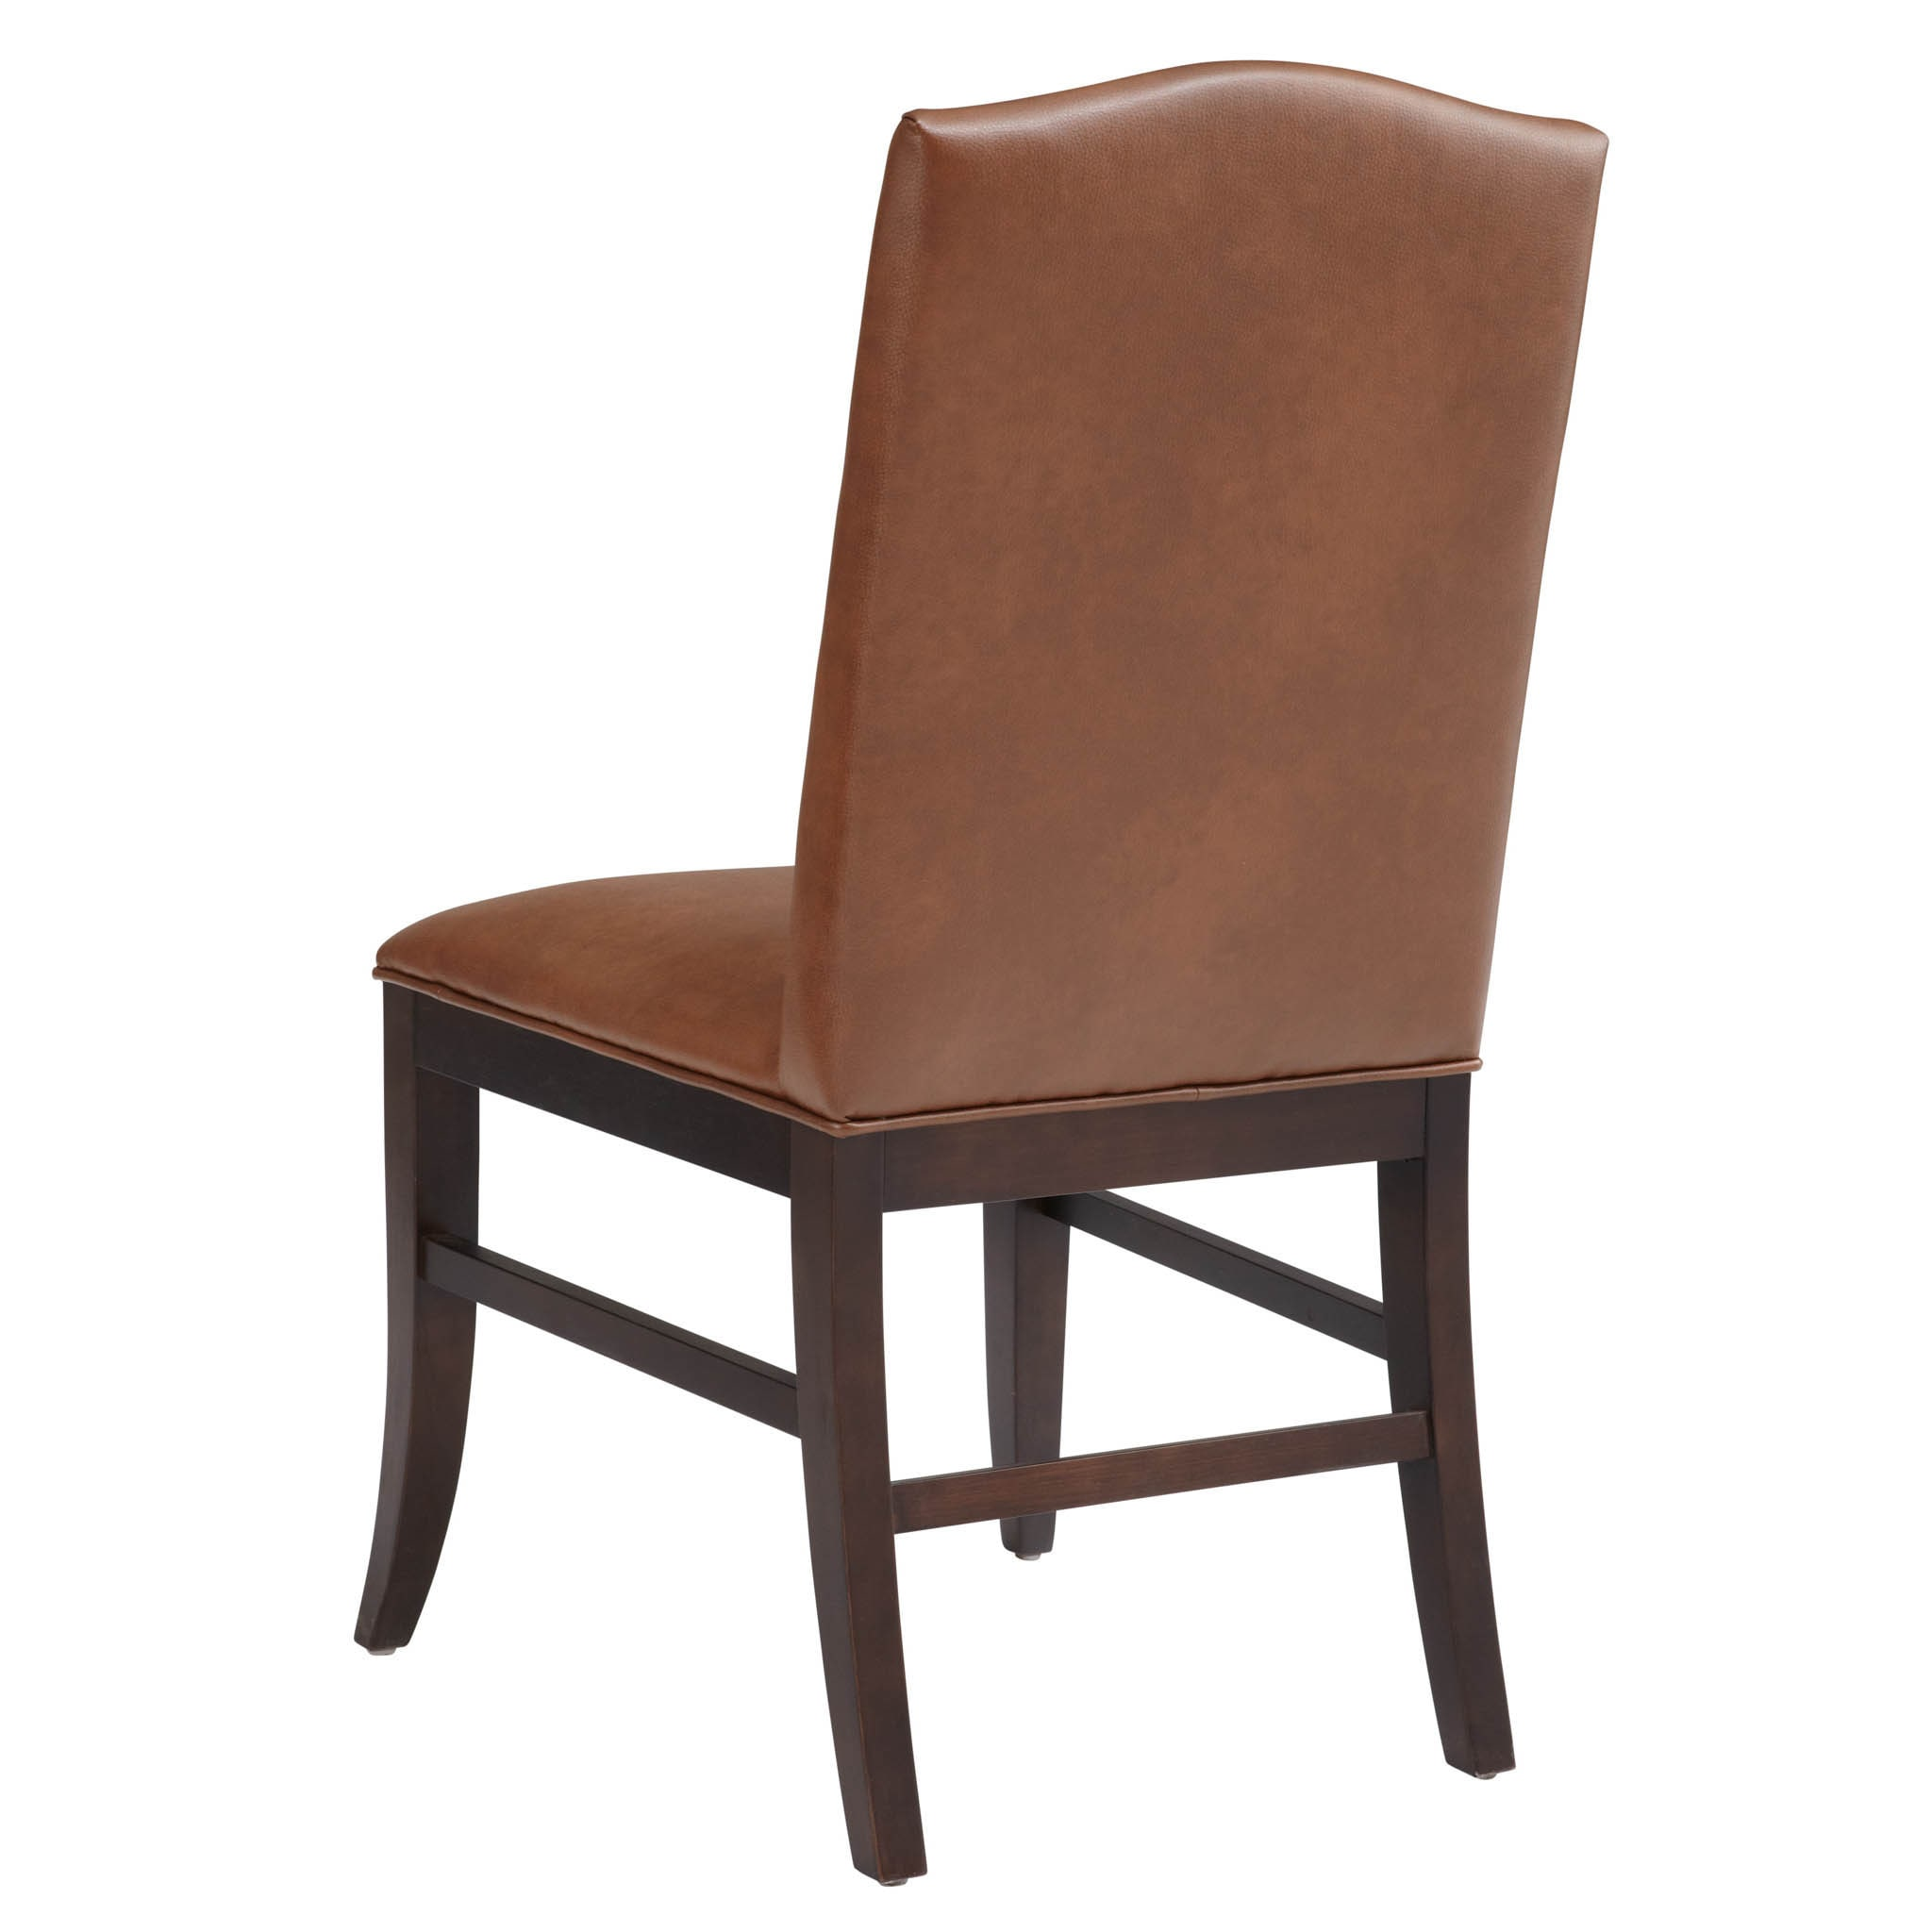 Sunpan 5west Maison Cognac Bonded Leather Dining Free Shipping Today 20881754